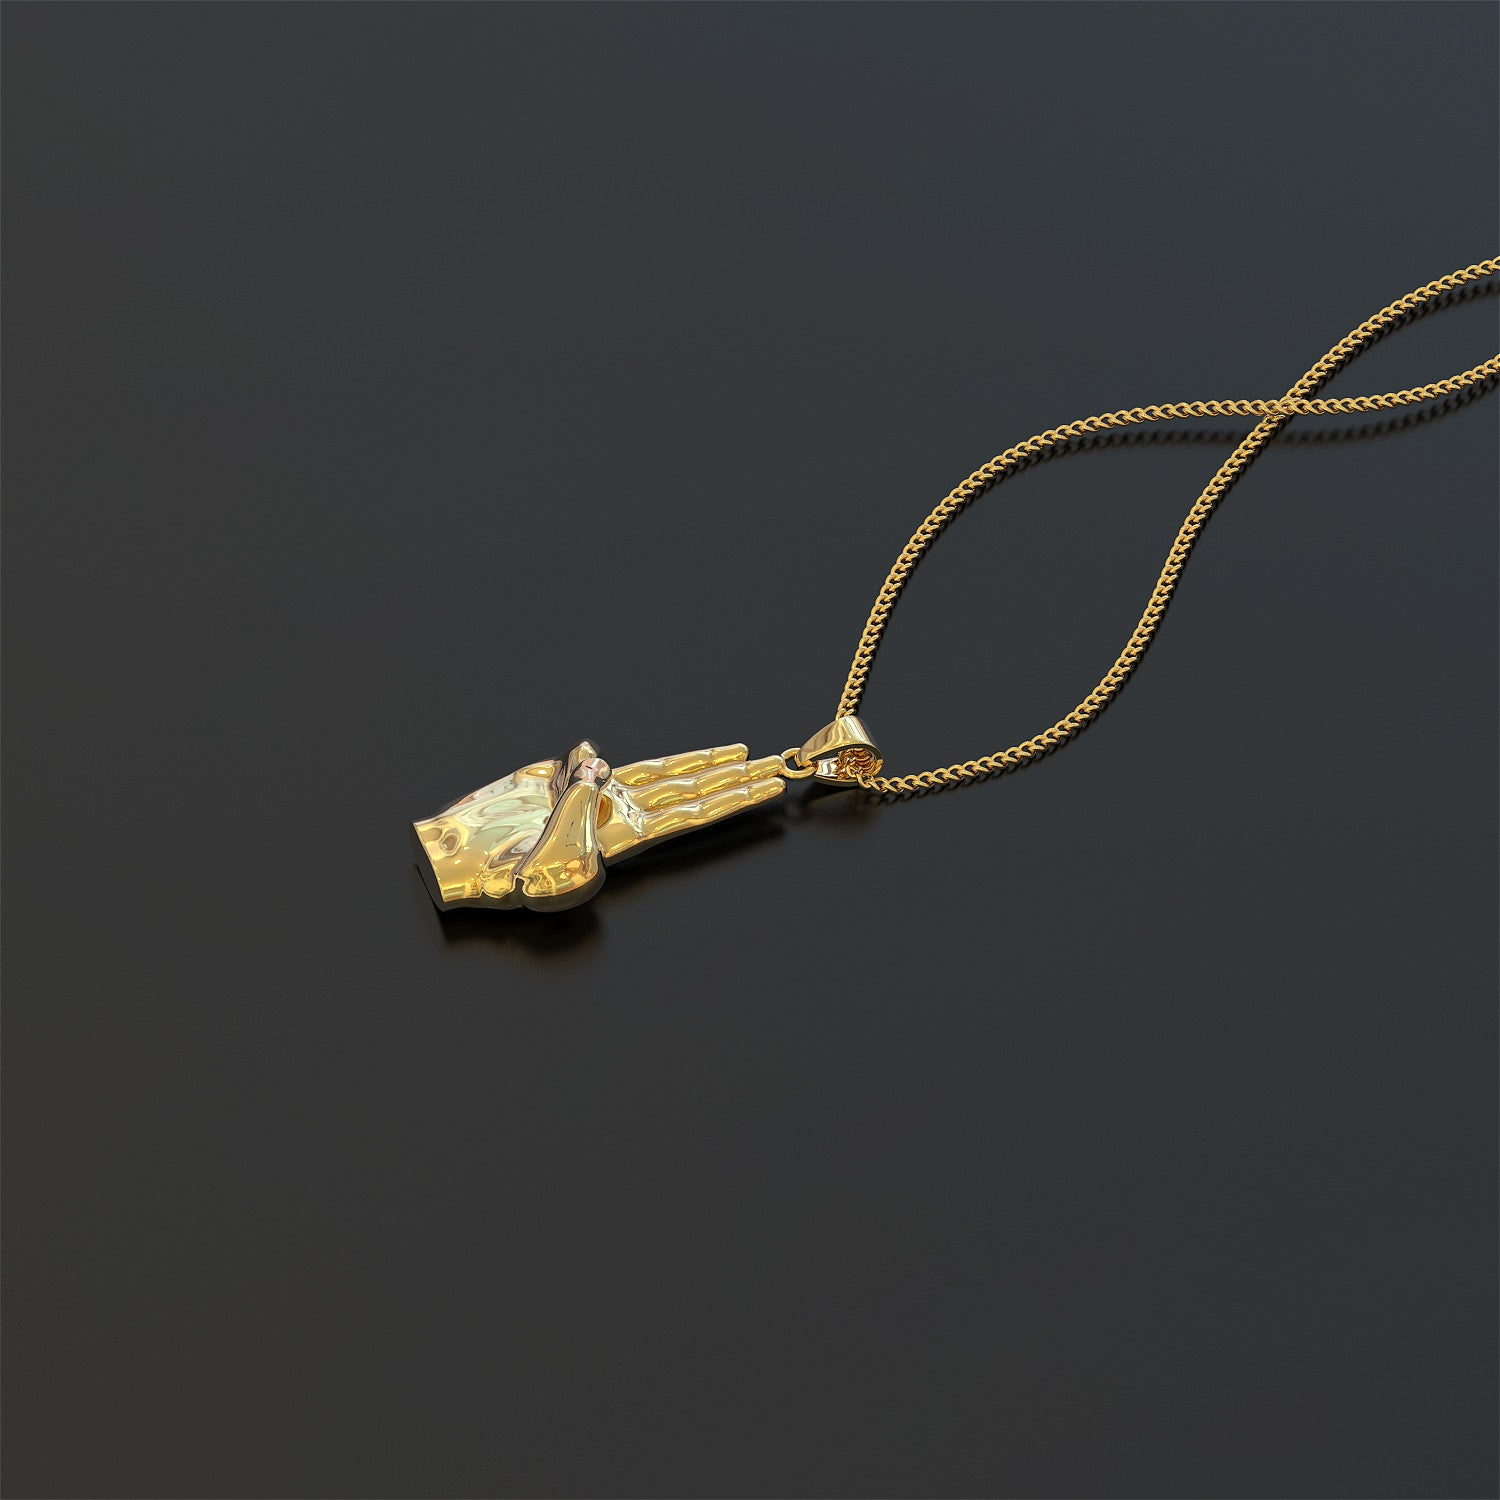 Scoutsign Necklace